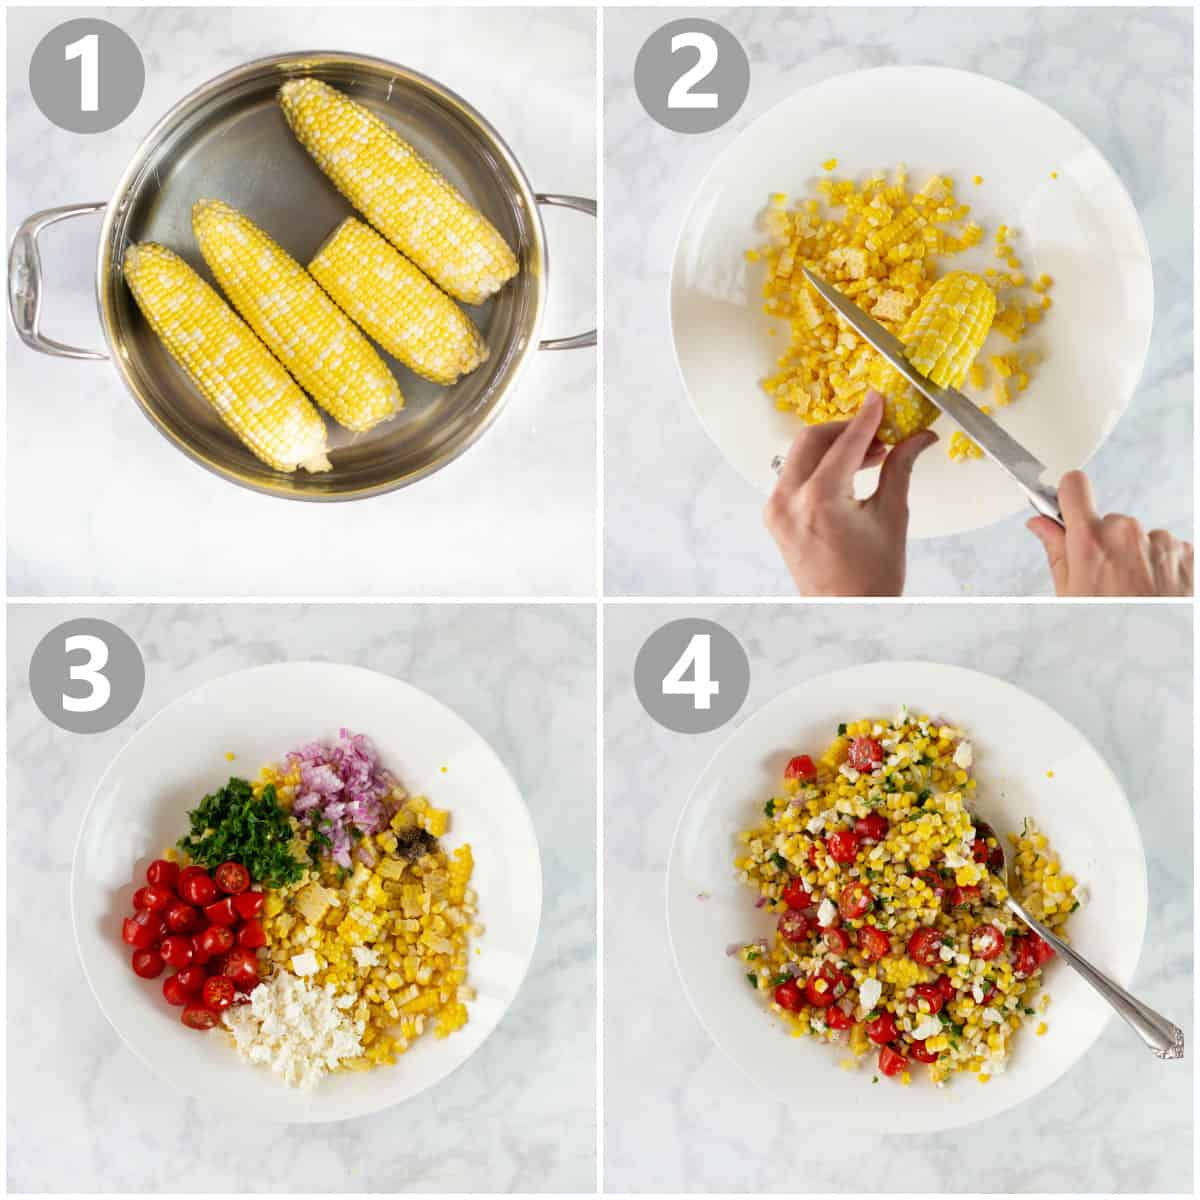 step by step photos of how to make corn salad